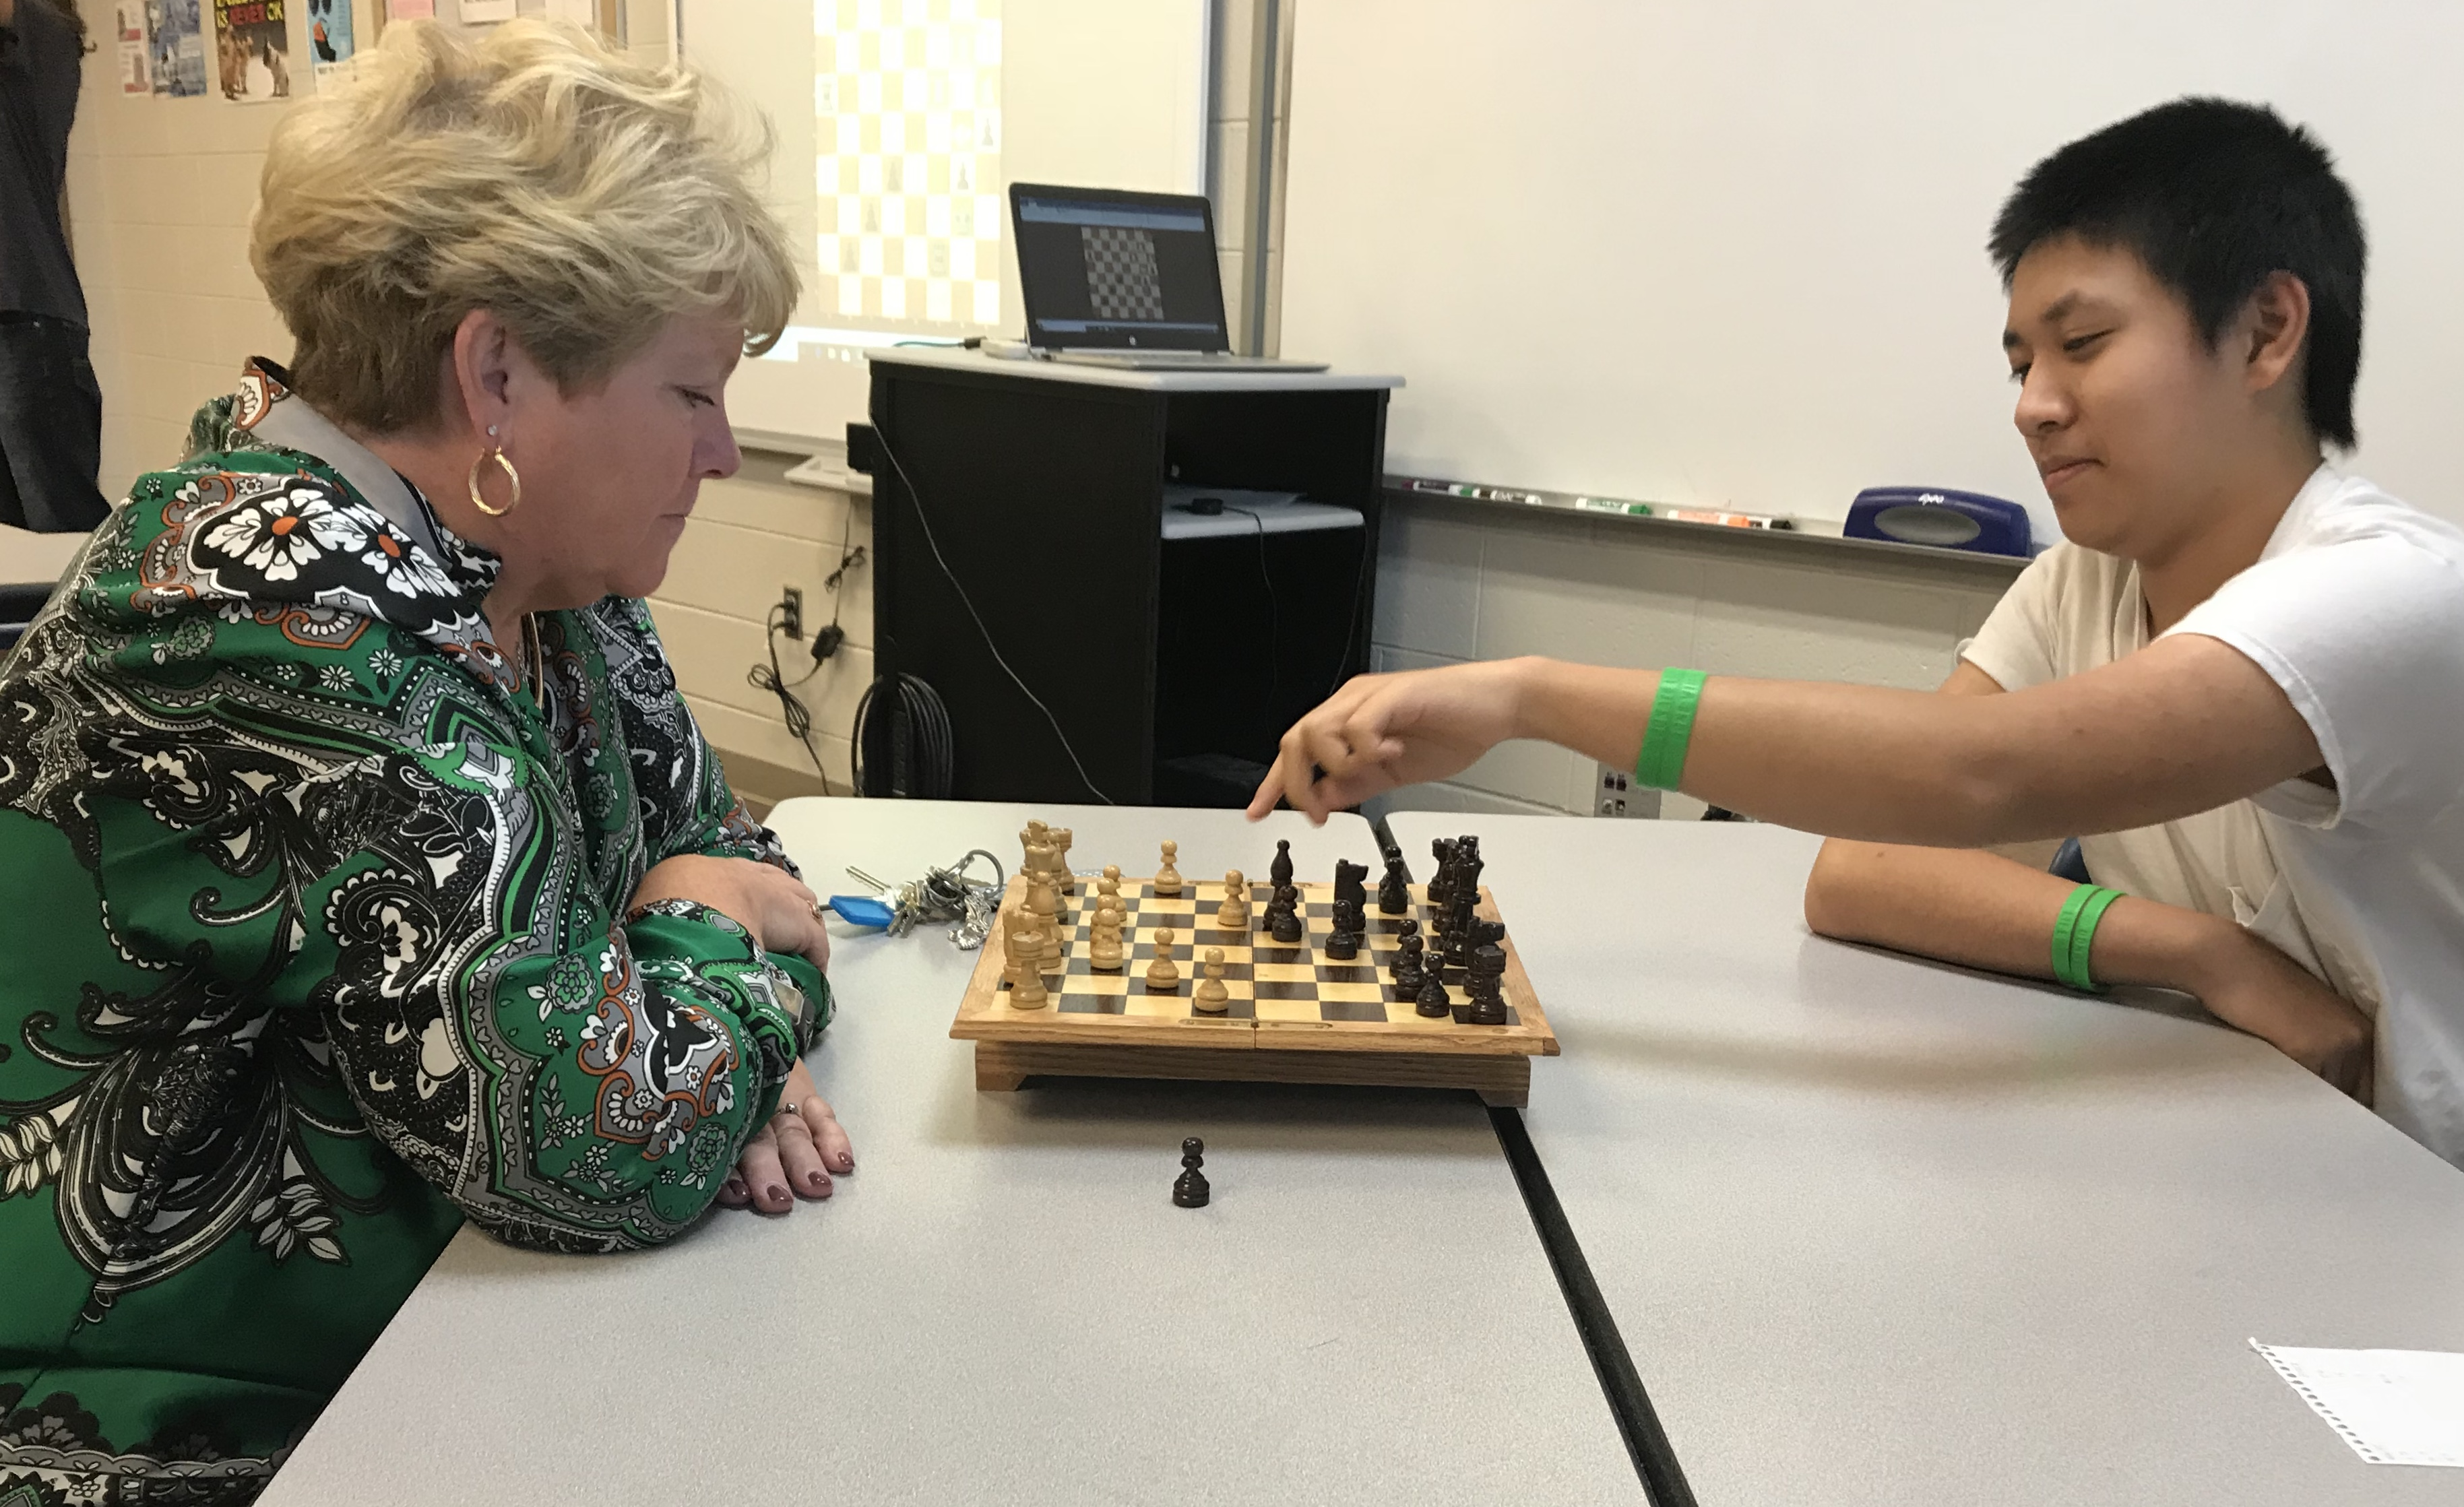 Hardin Valley Academy Principal Sallee Reynolds faces off against HVA sophomore Eric Zhao, during a match at the school's Chess Club meeting.